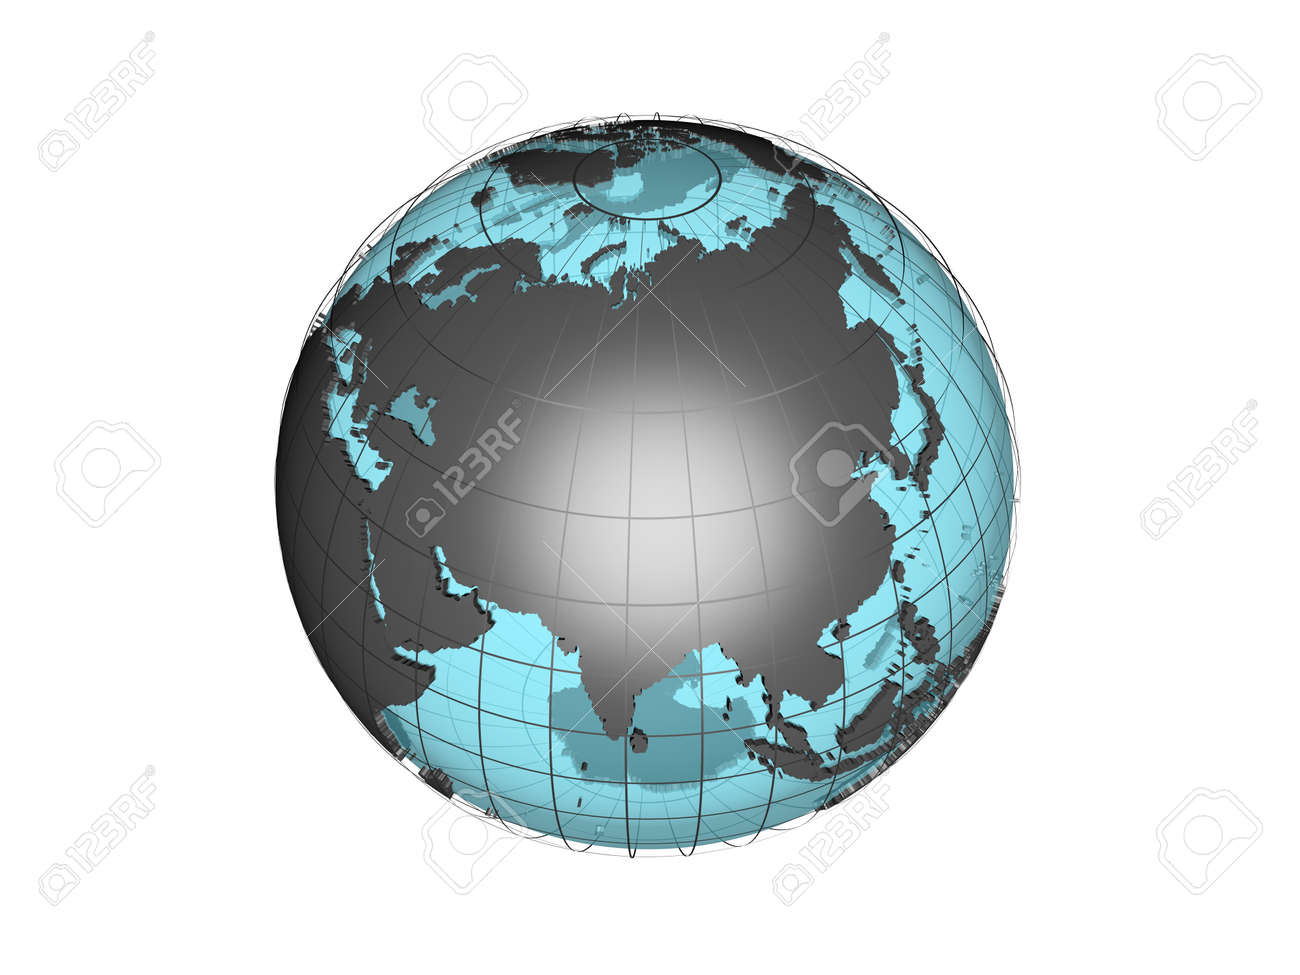 3d model of globe map showing the asian continent stock photo 3d model of globe map showing the asian continent stock photo 8668891 gumiabroncs Choice Image